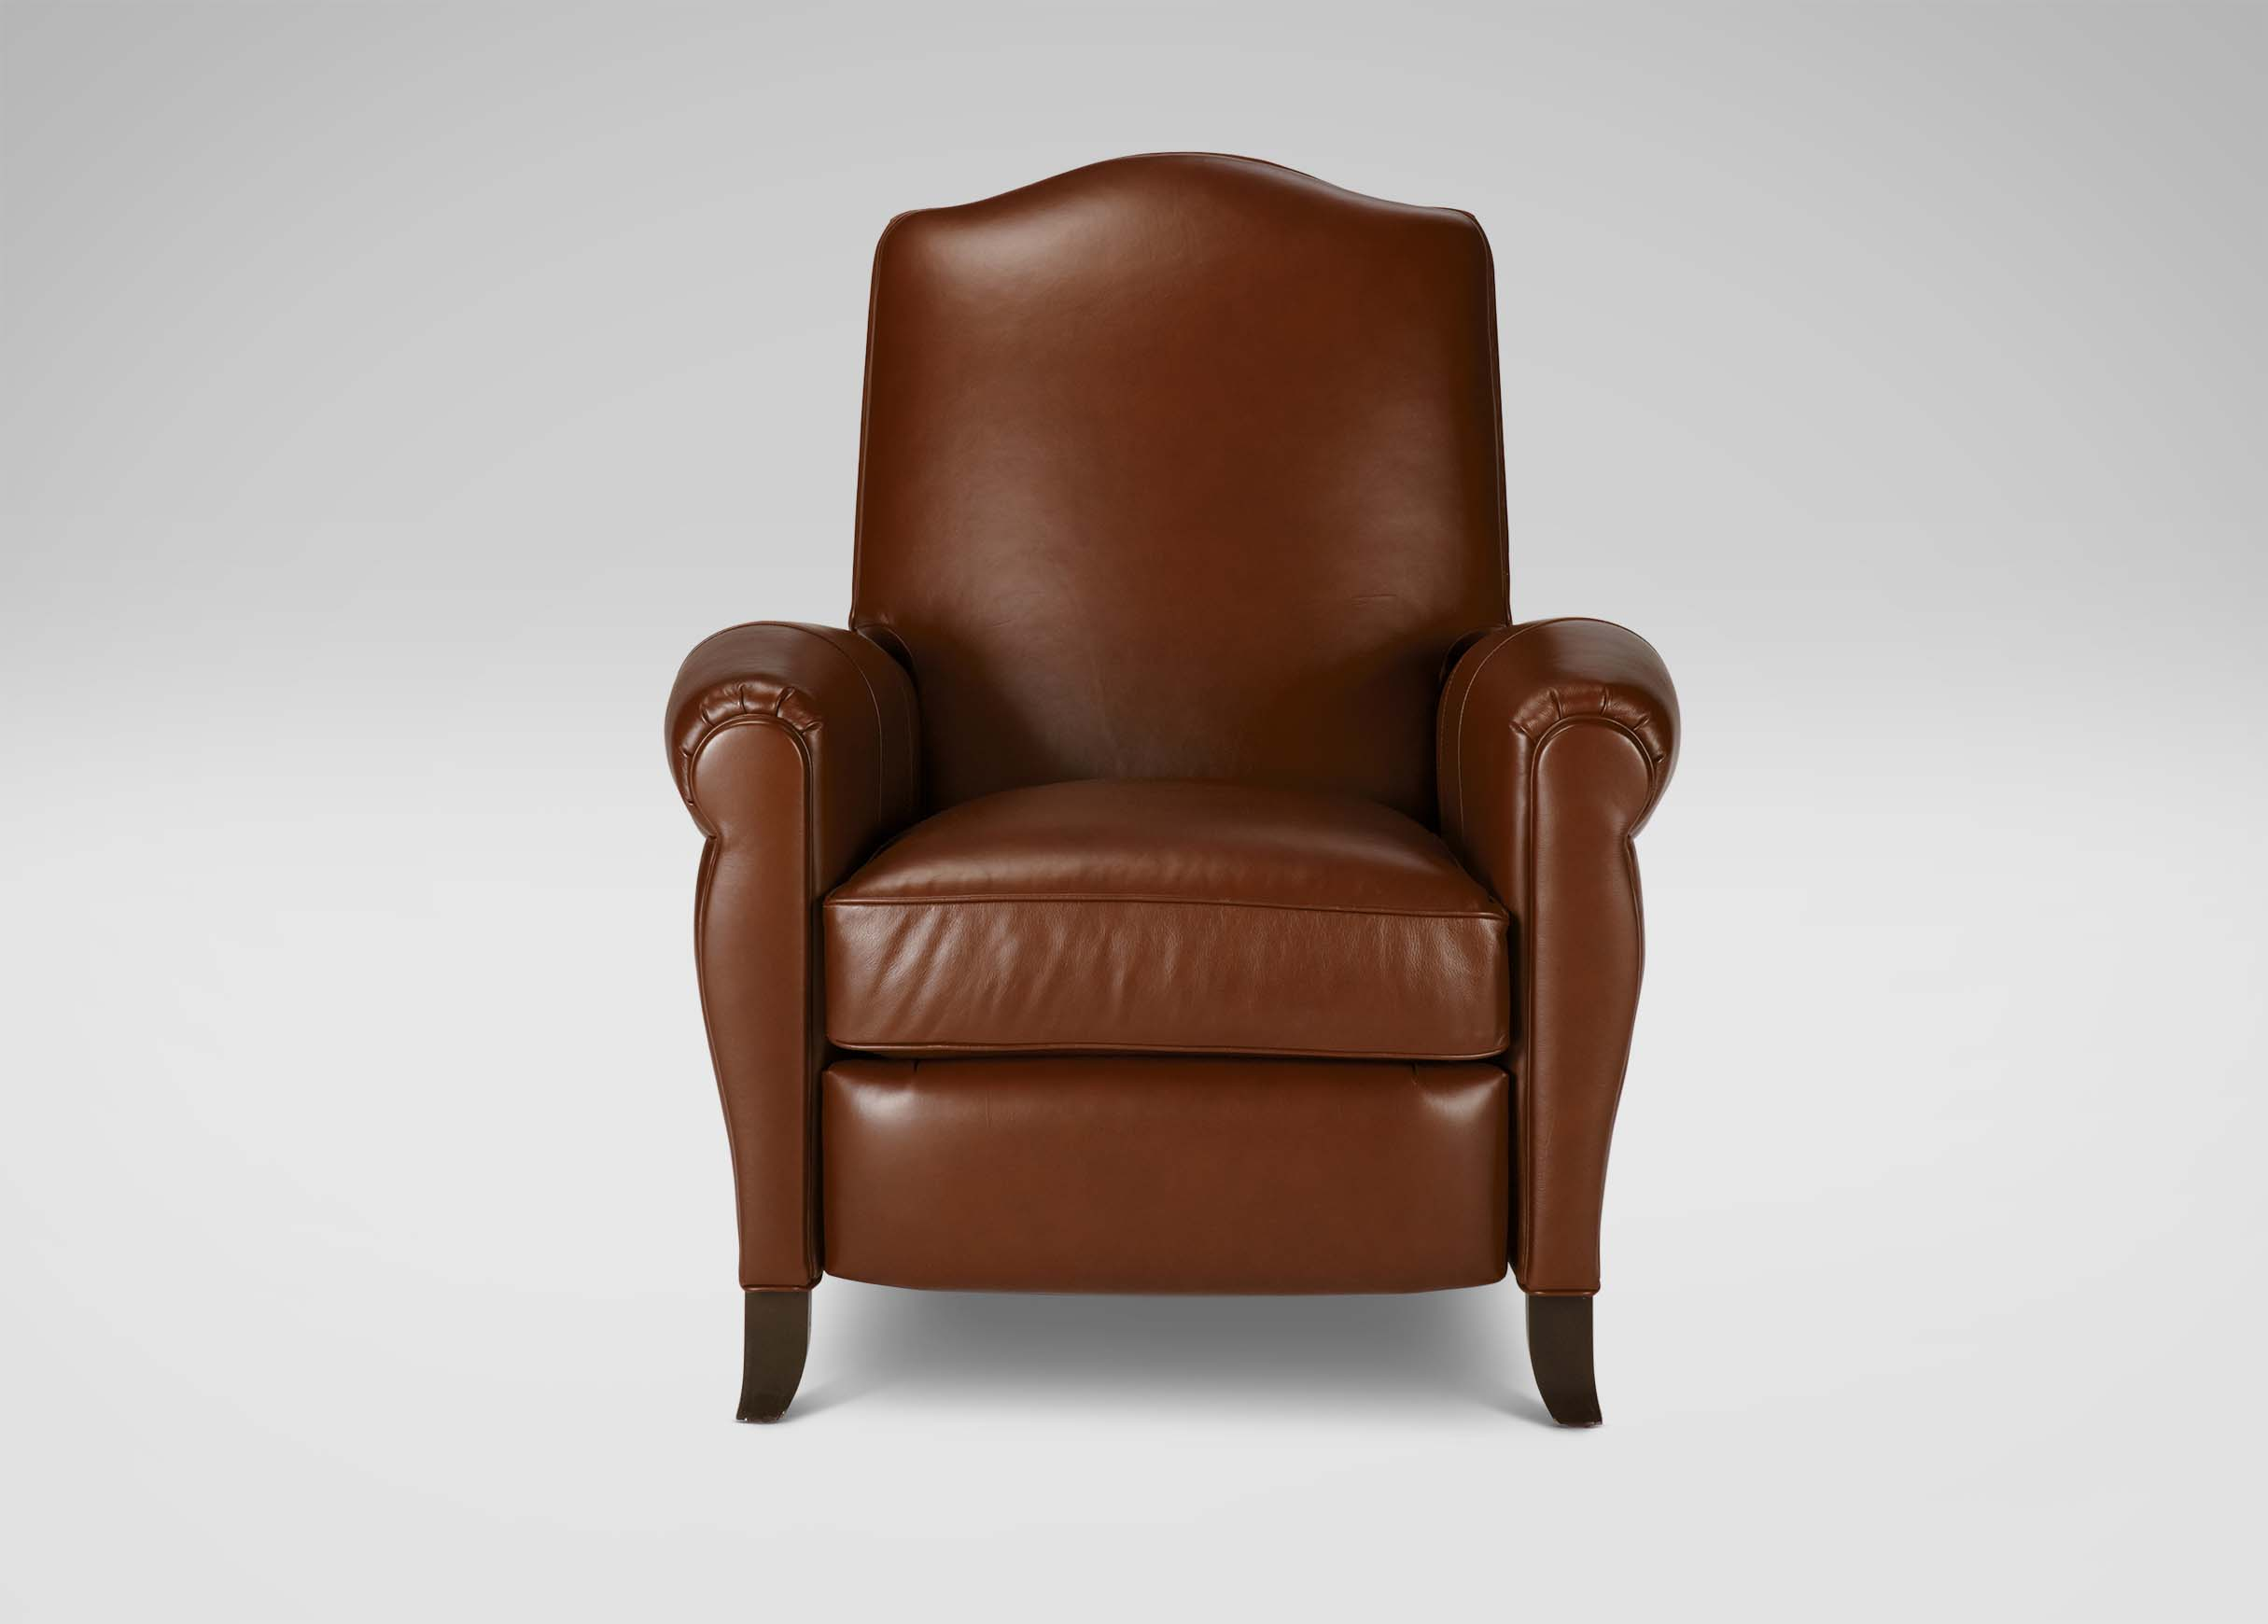 Leather Recliner Chairs Paloma Leather Recliner Recliners